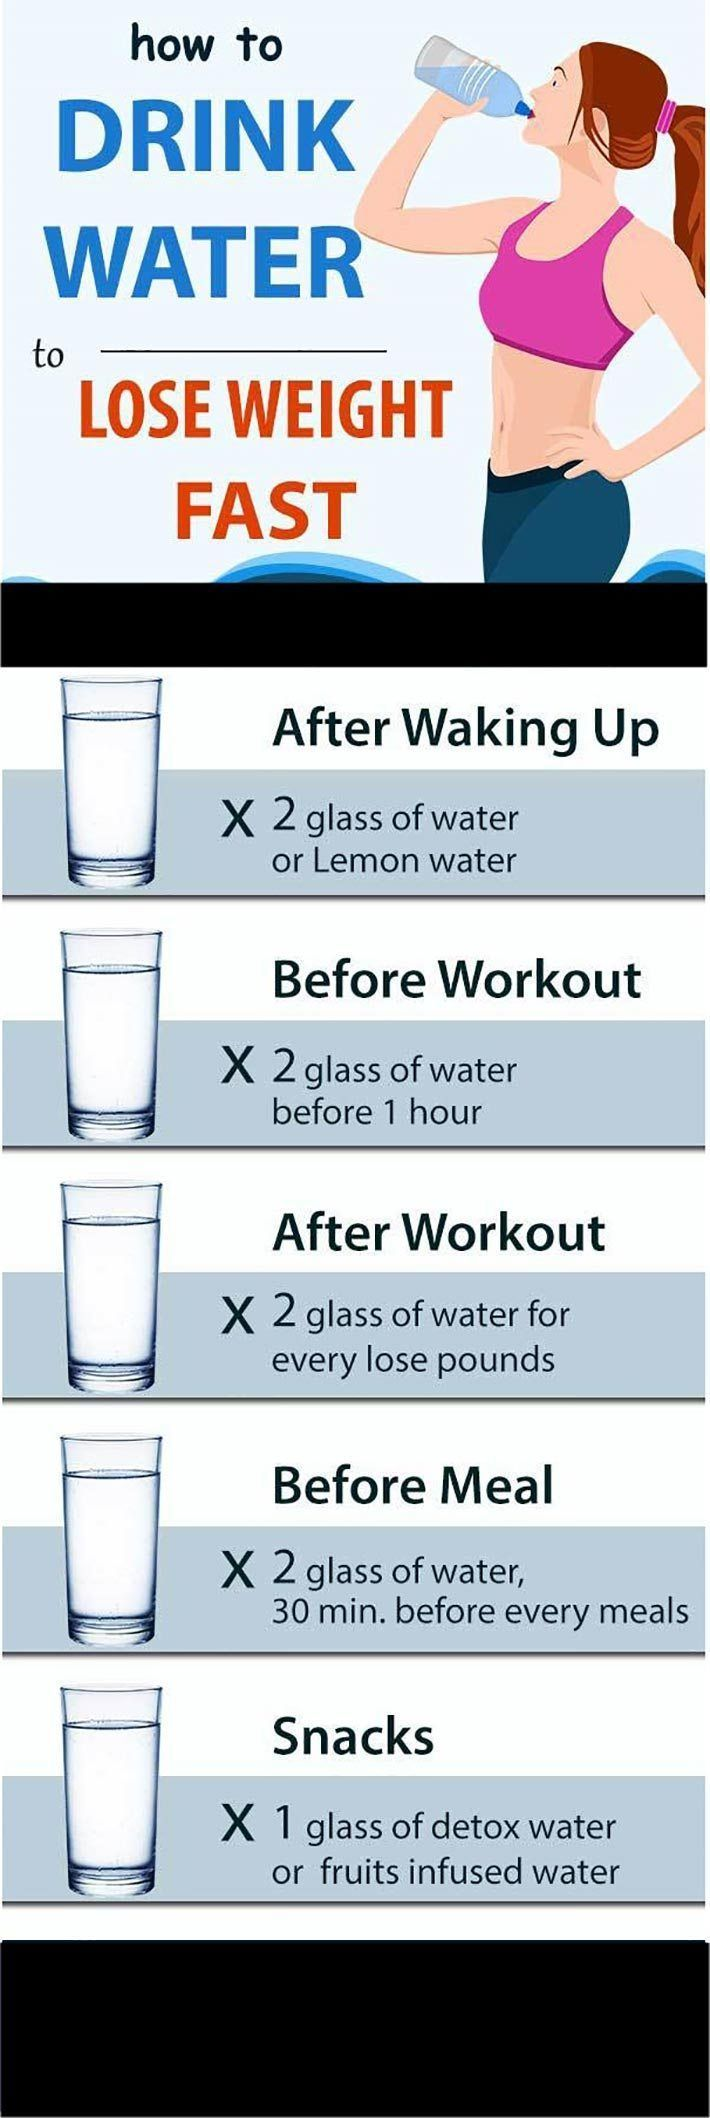 Quick tips to weight loss #easyweightloss :)   healthy weight loss ideas#lifestyle #lowcarb #goals